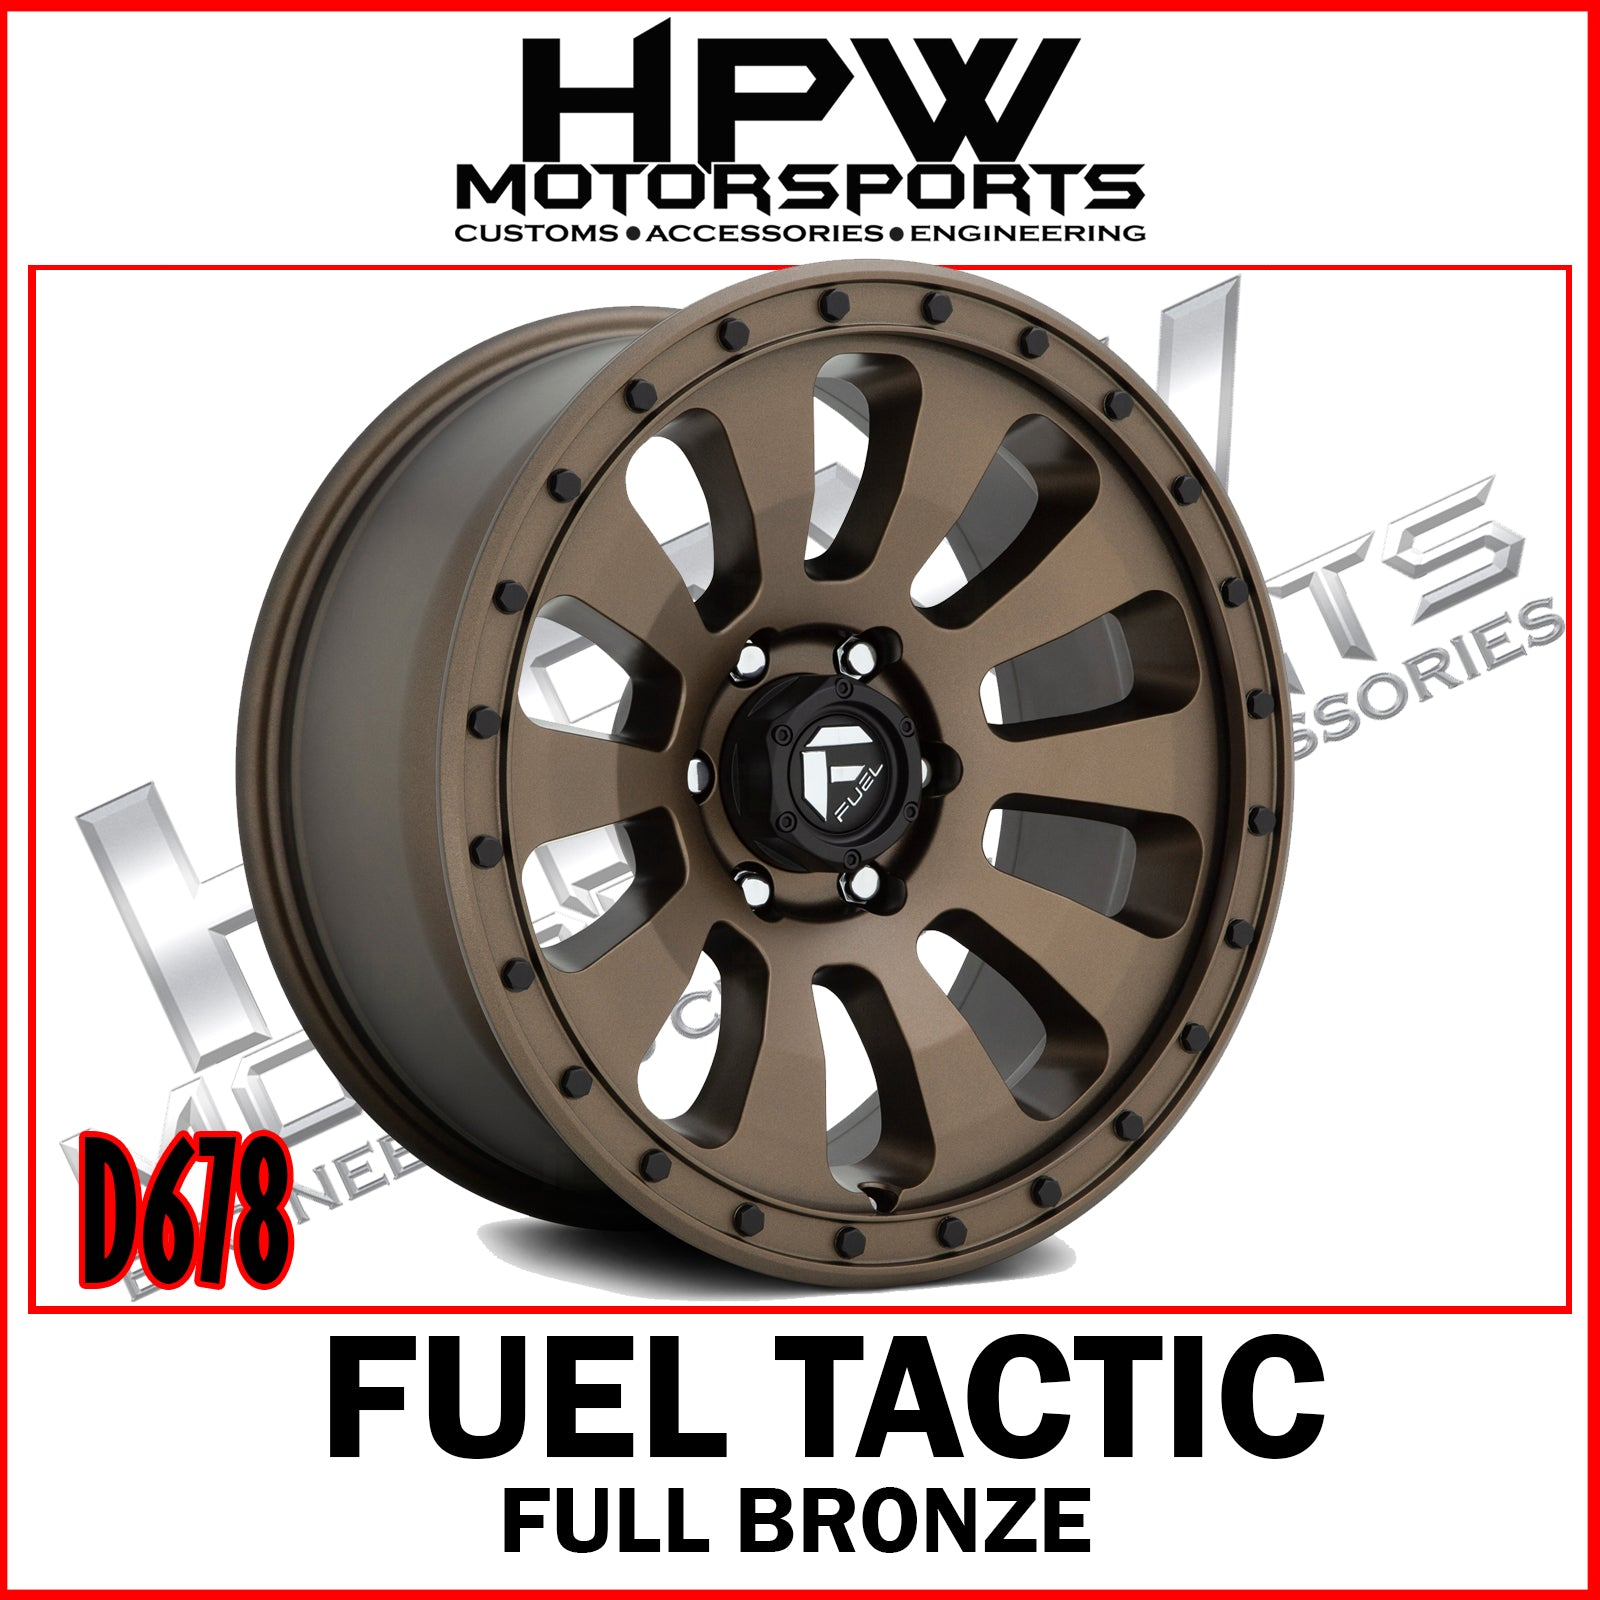 Copy of D678 FUEL TACTIC - FULL BRONZE - Set of 4